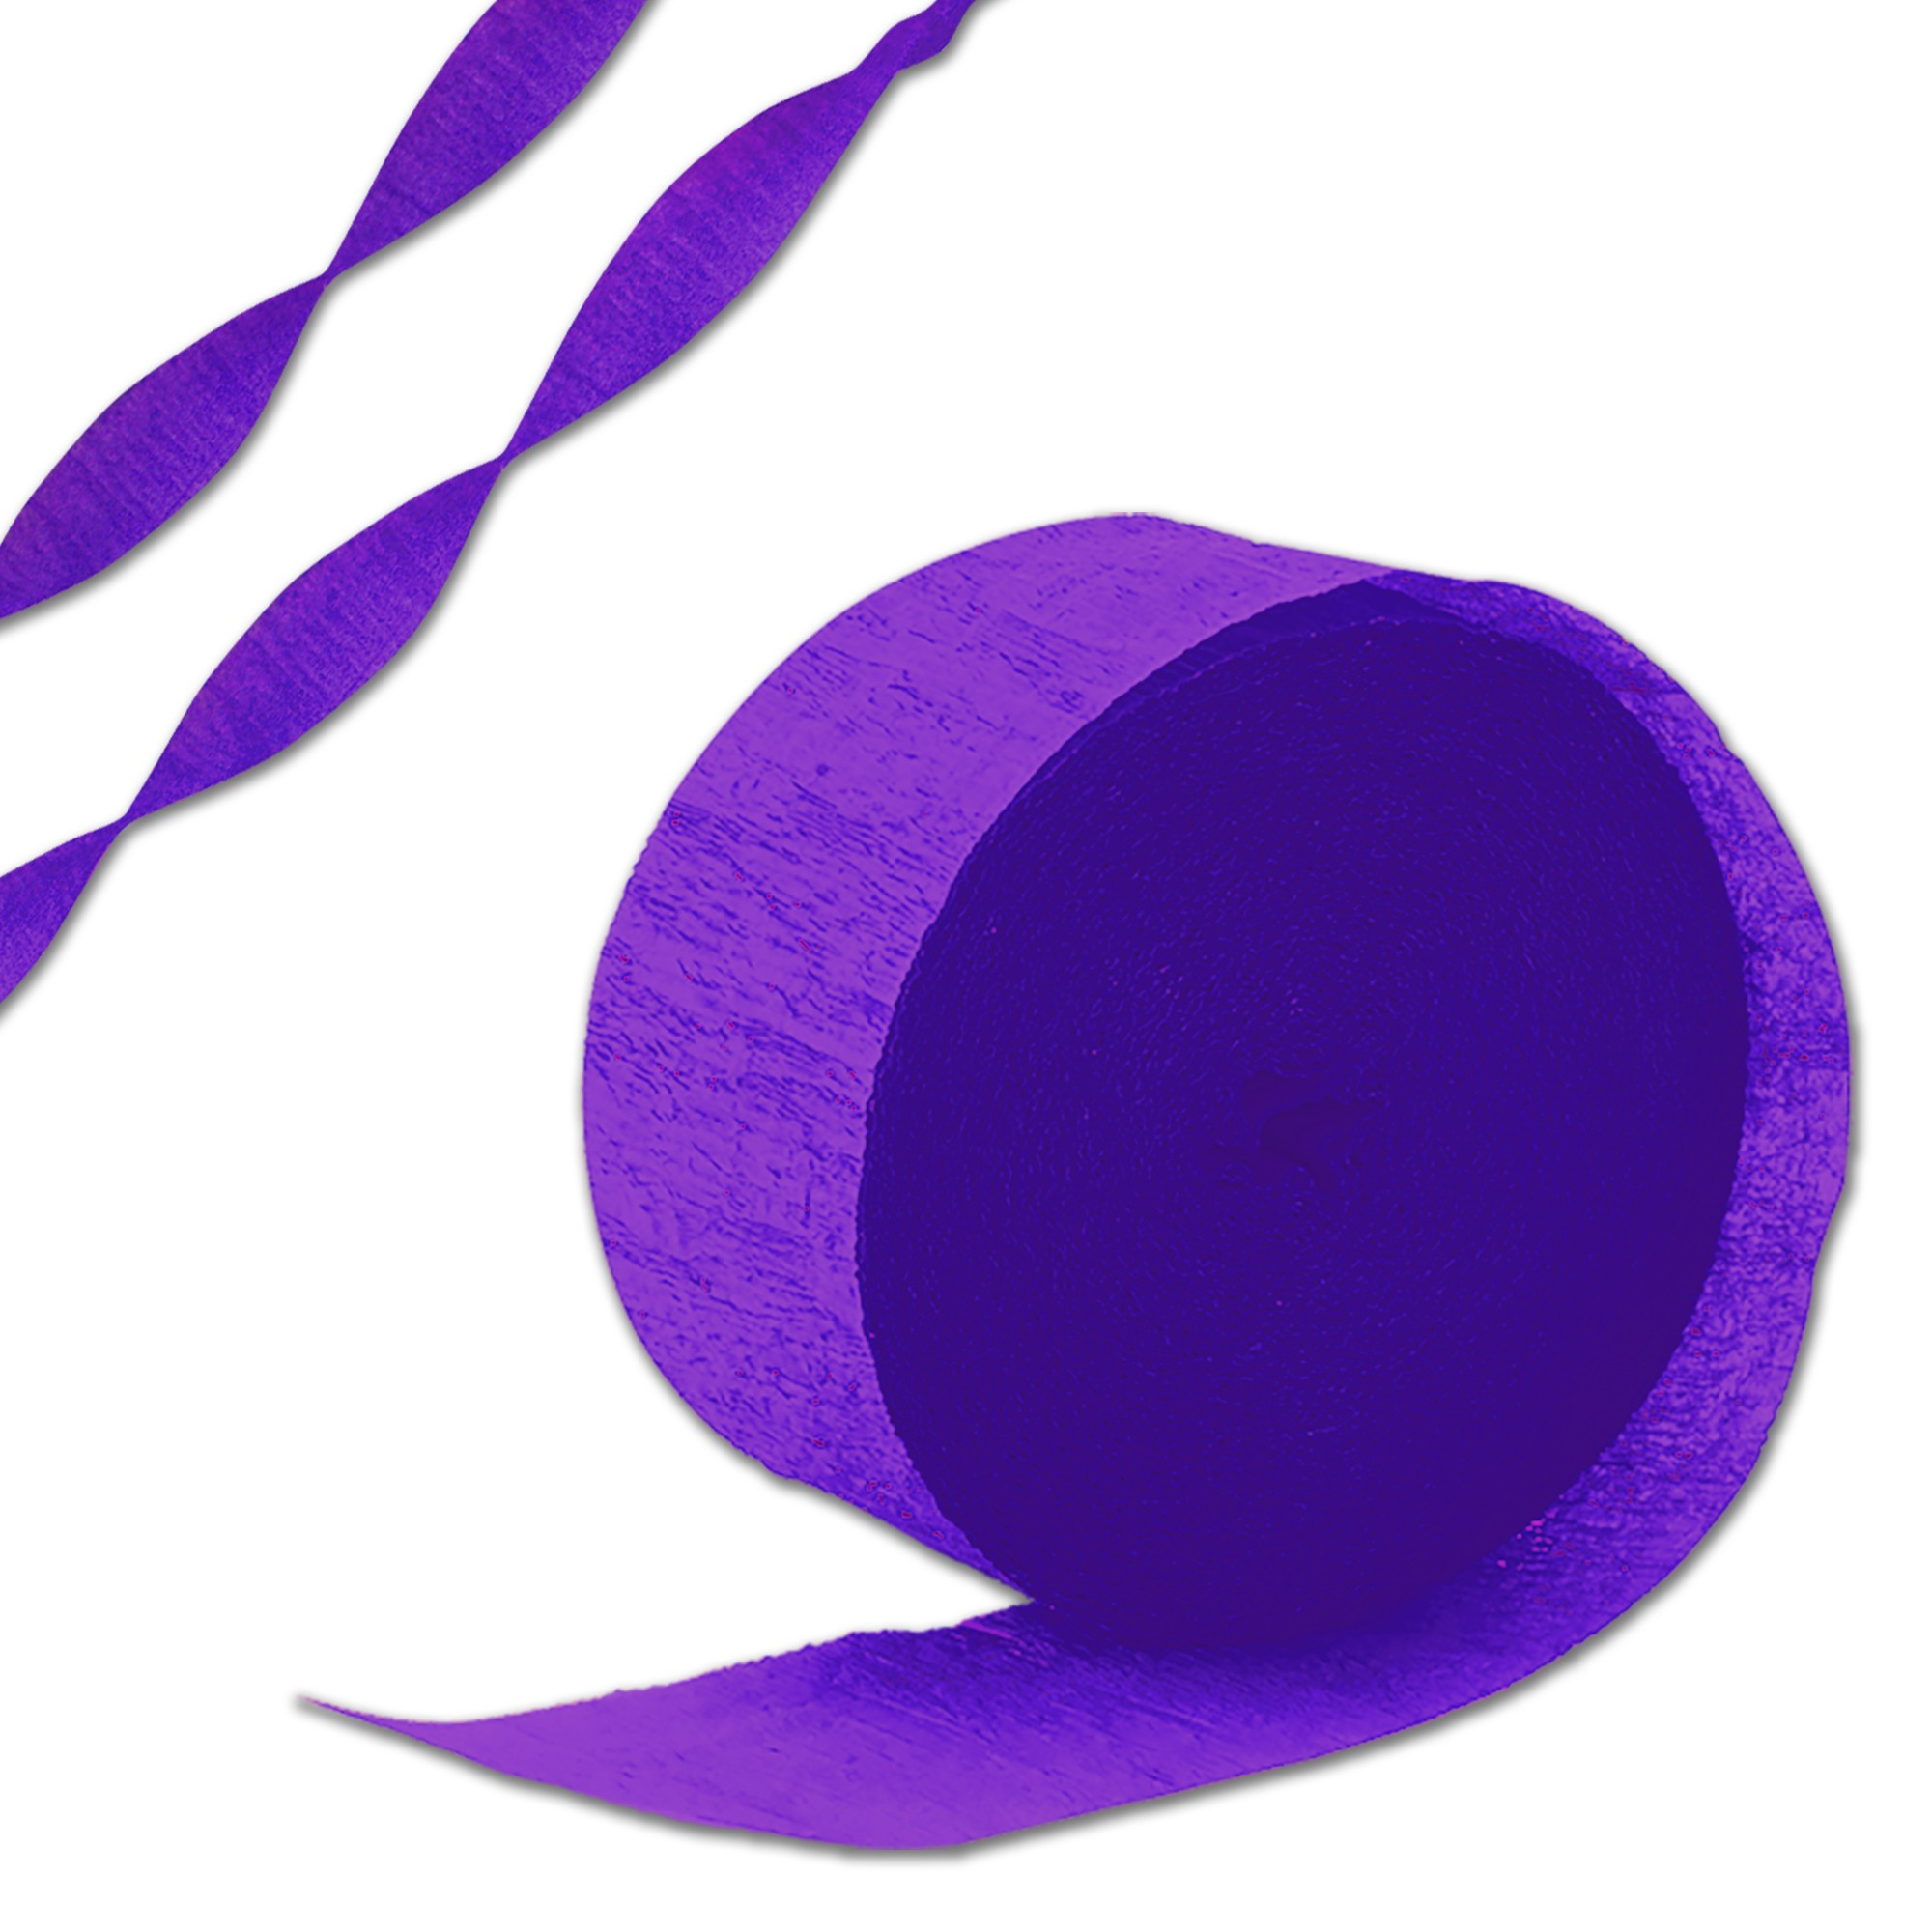 PURPLE CREPE STREAMER